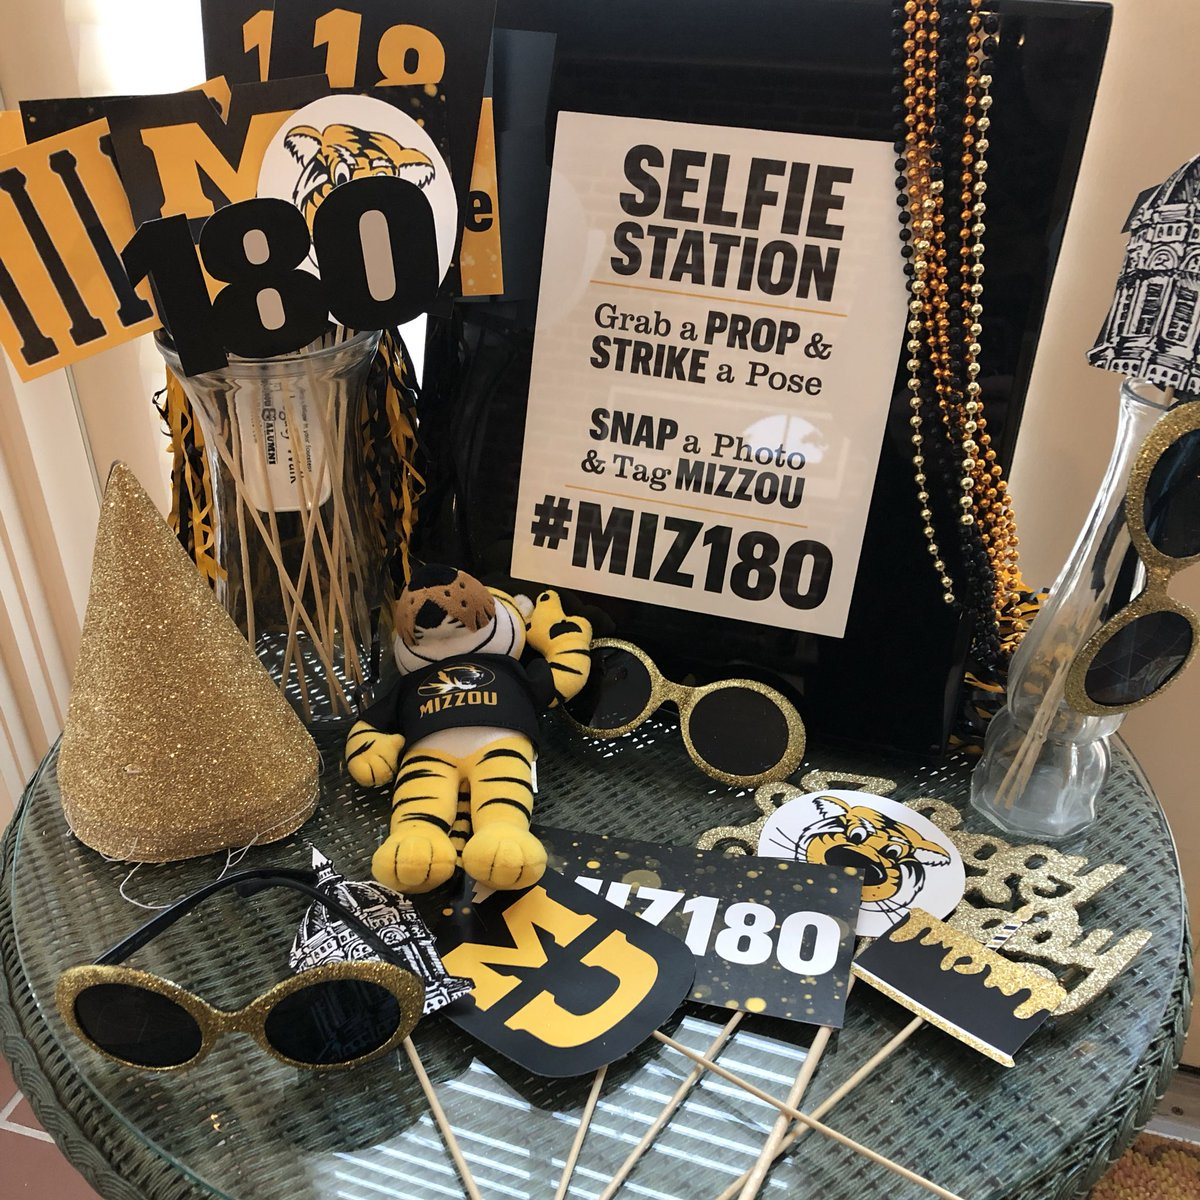 A Selfie Station With Mizzou Decorations